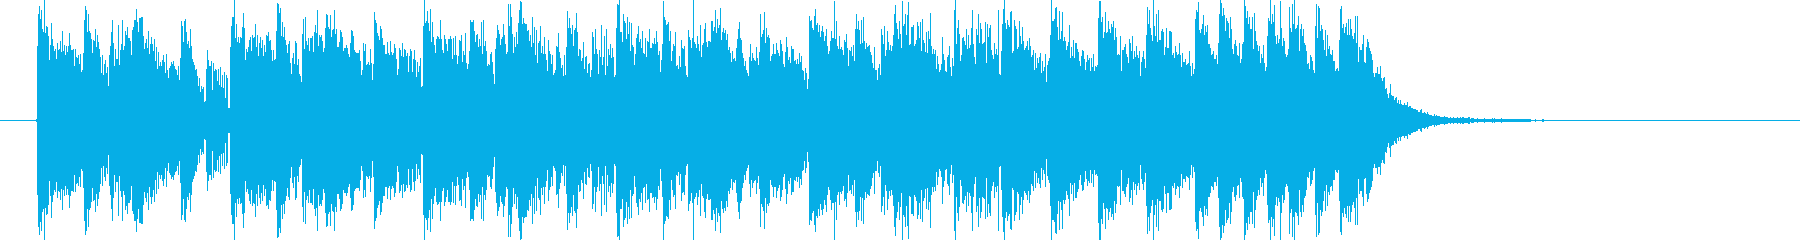 Up-tempo strings music's reproduced waveform